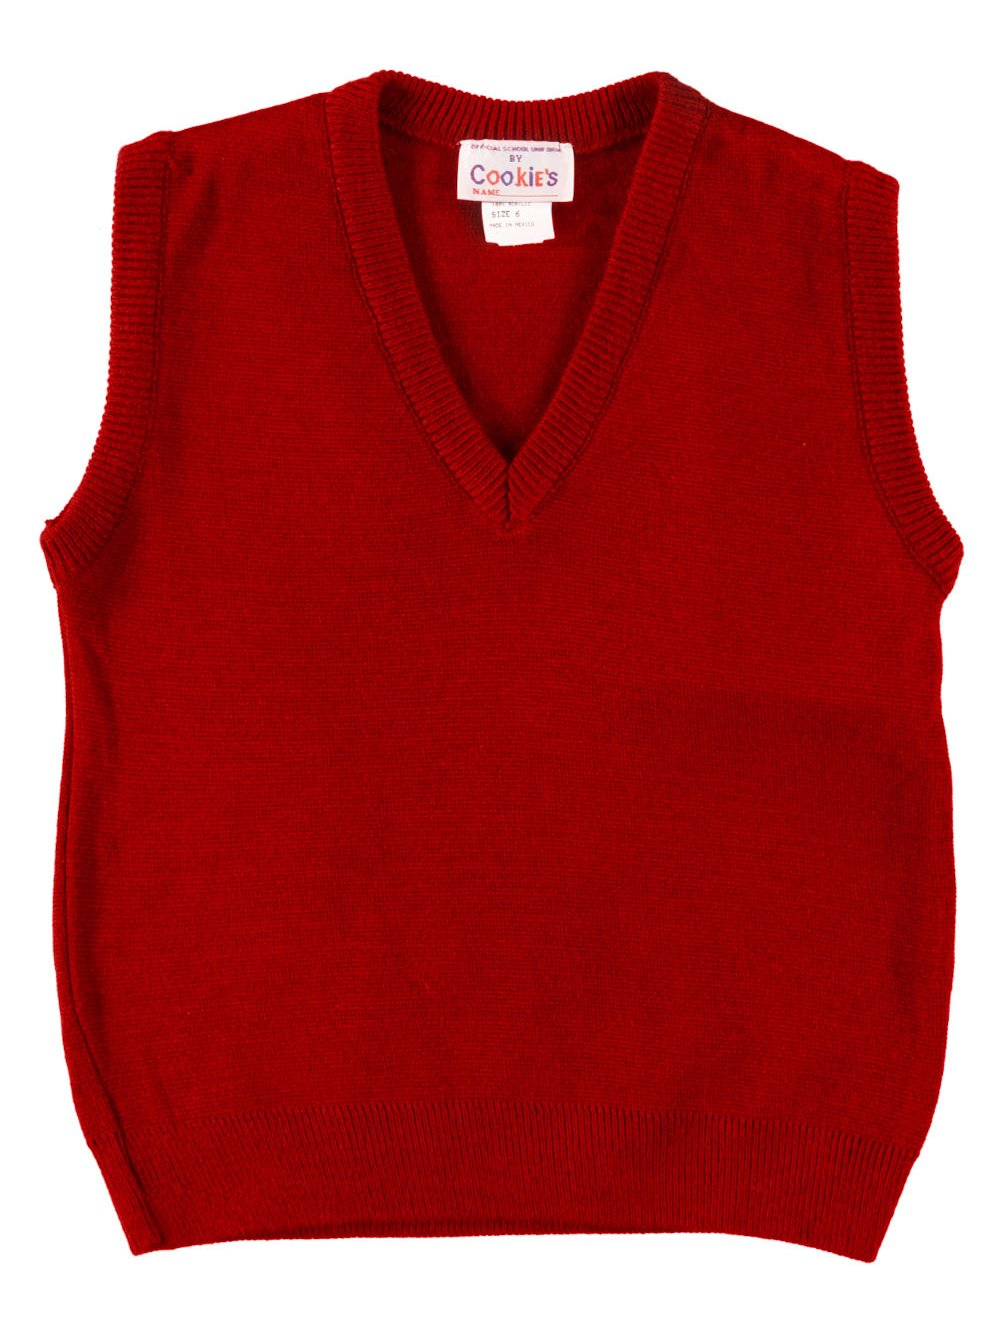 Cookie's Brand V-Neck Unisex Sweater Vest - red, 14